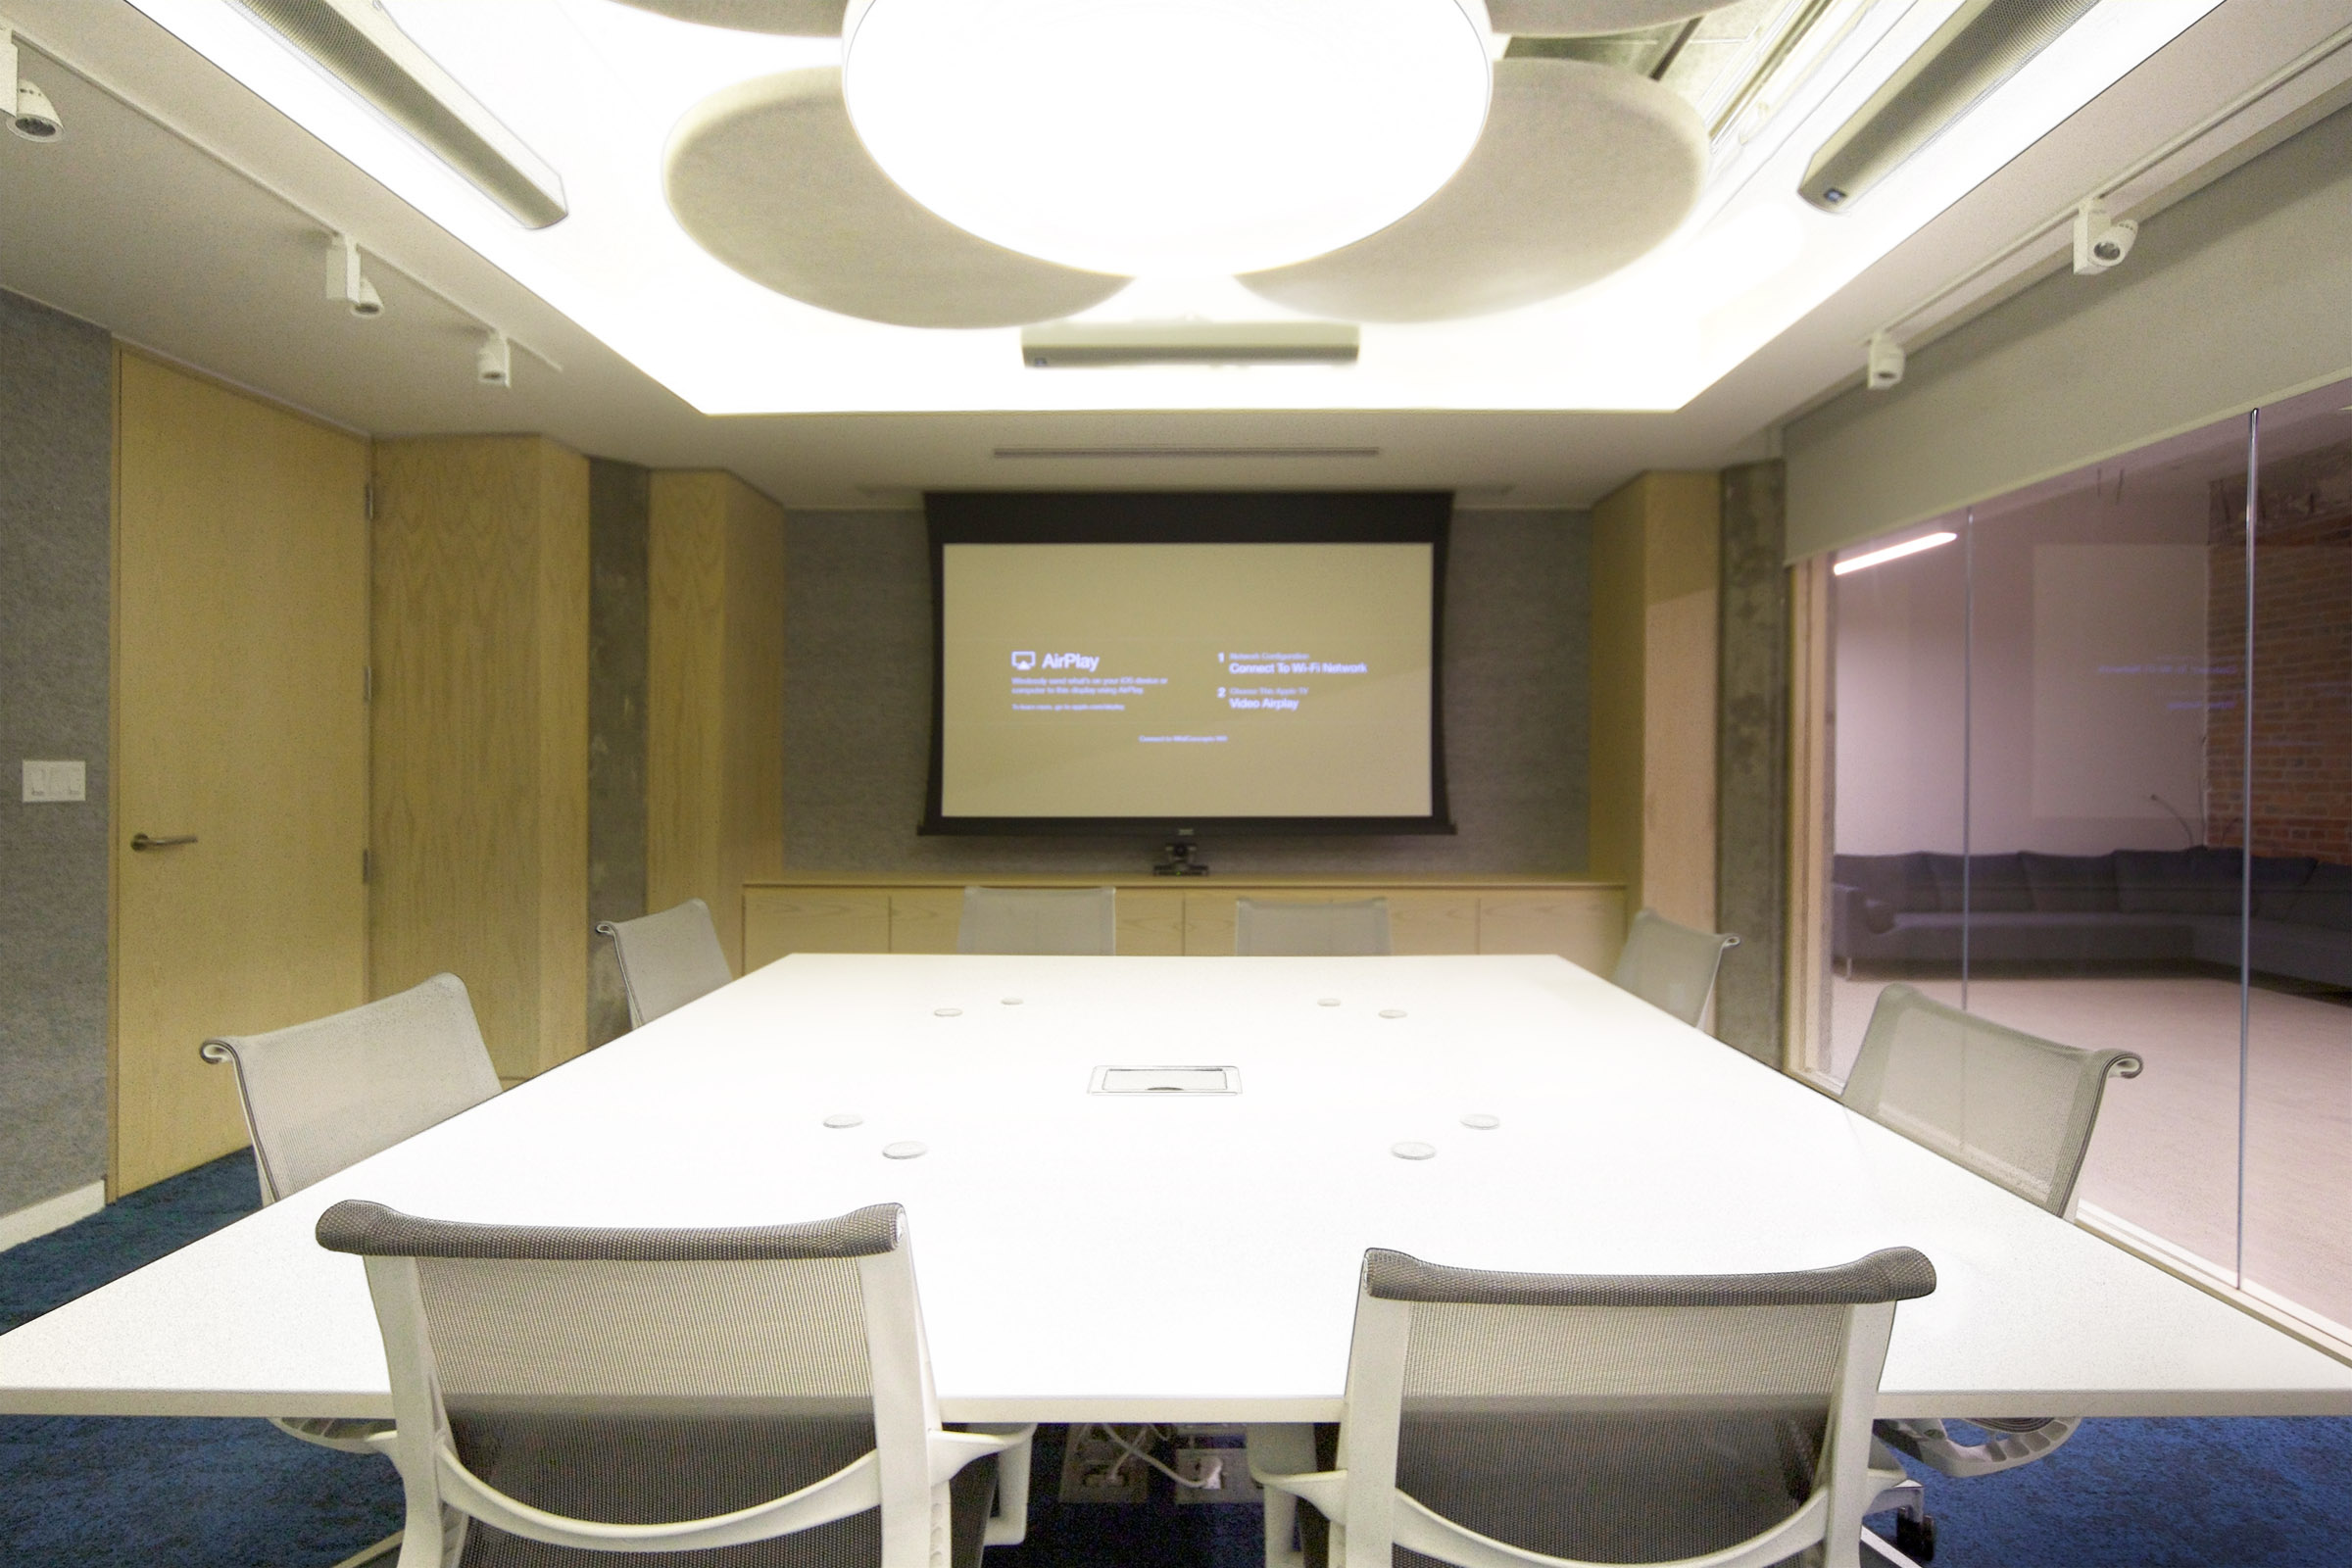 """Several connection options, including wireless video transmission via Airplay, allow guests and staff alike to display what they want, as the need to on either the 50"""" TV, or the 9'-foot motorized projection screen."""